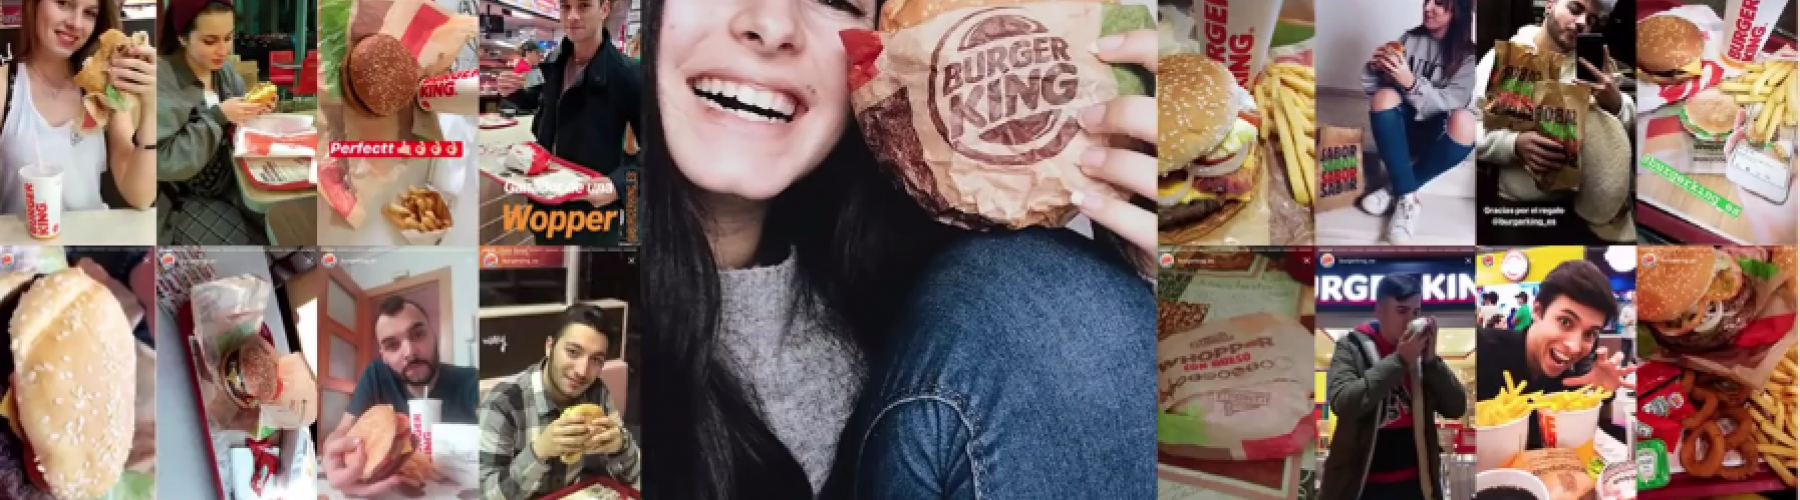 burger king order by stories